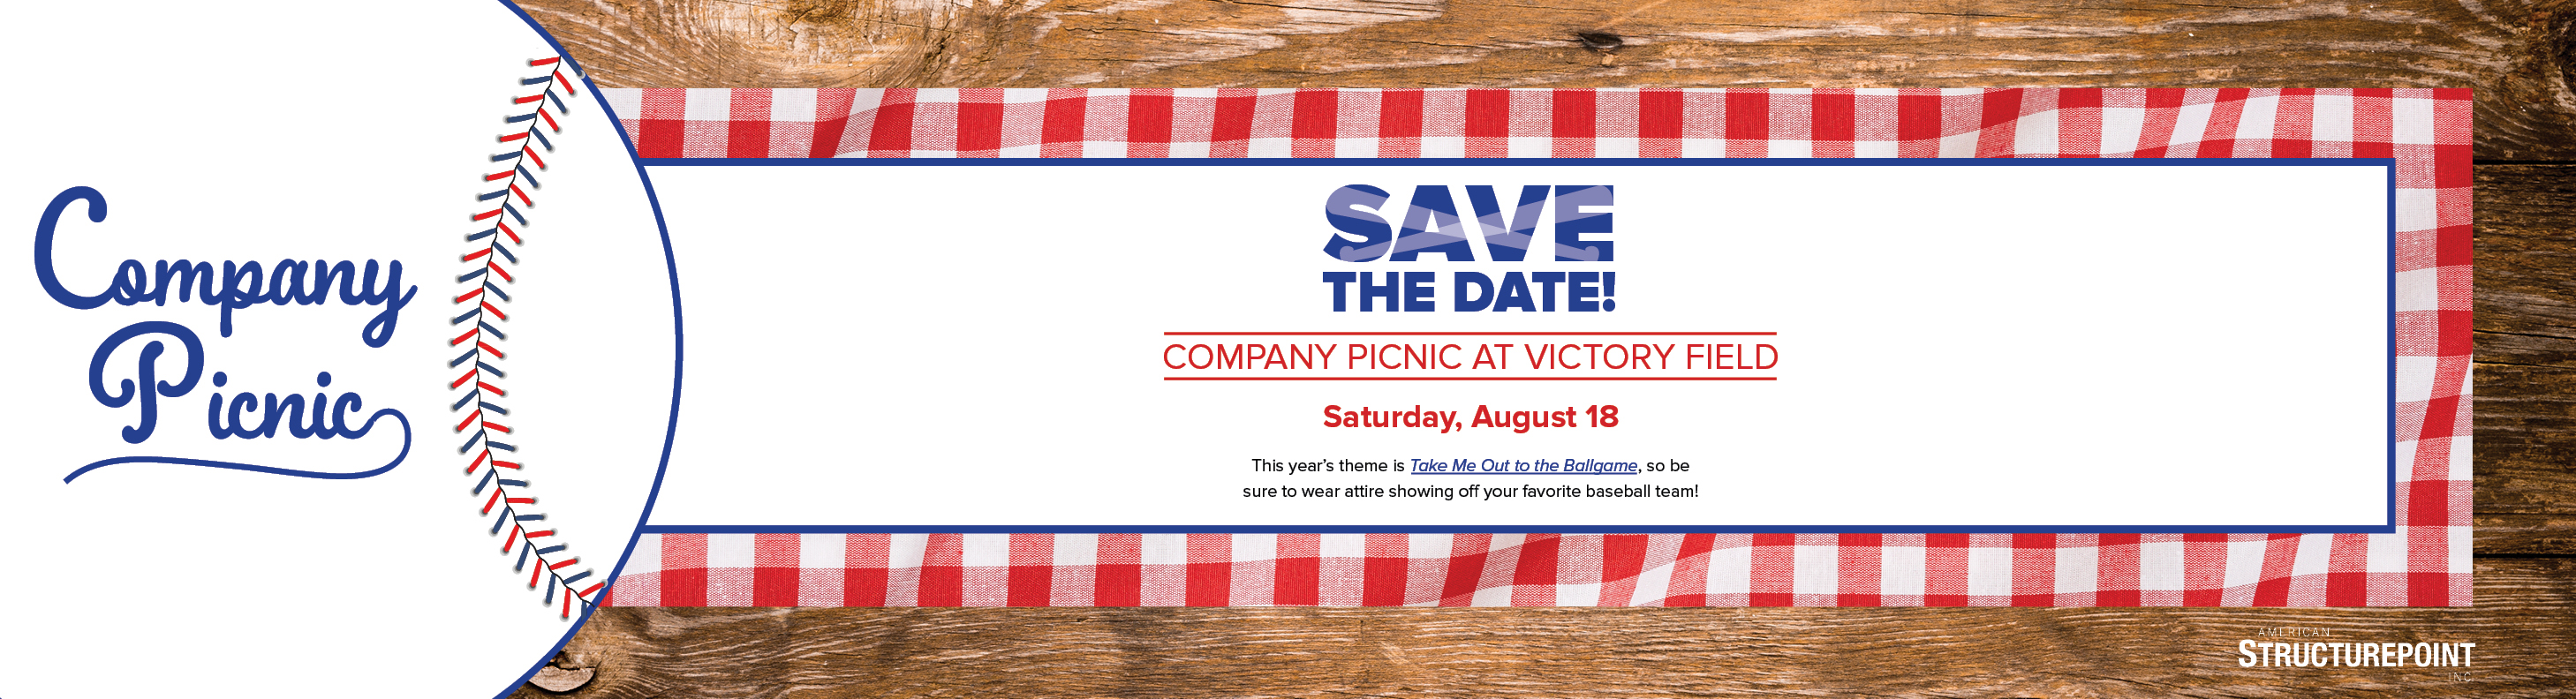 company picnic save the date